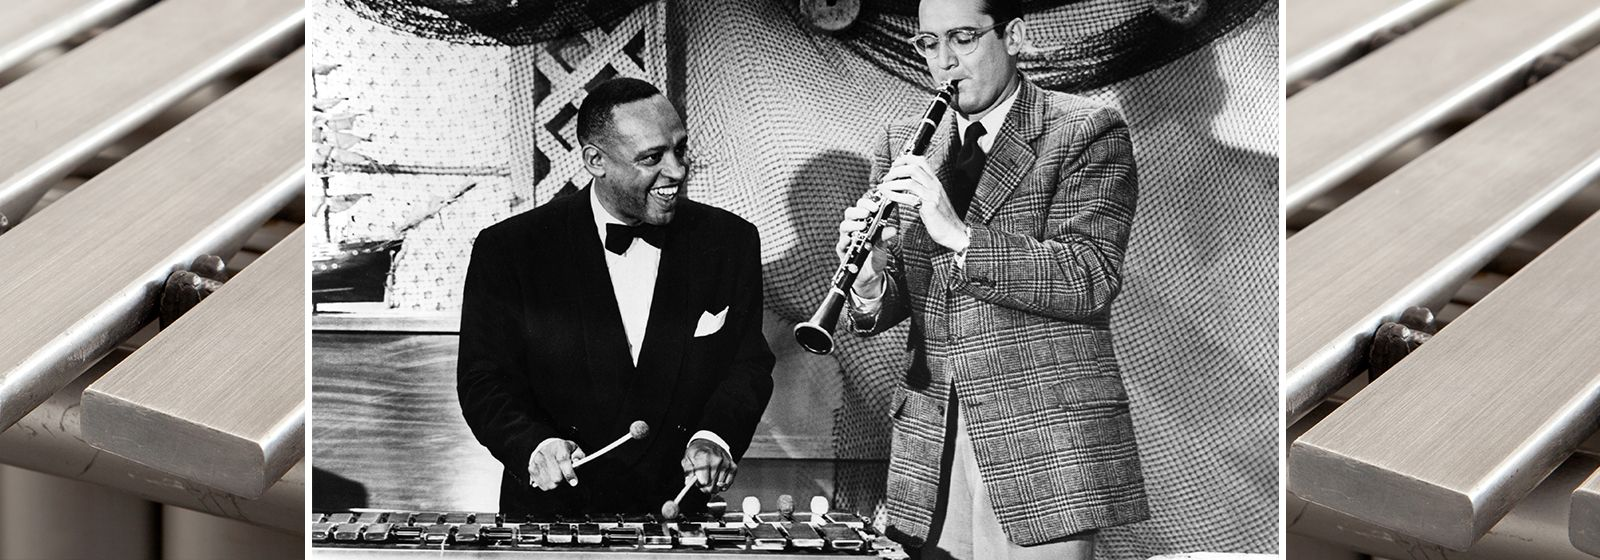 Jazz great made the vibraphone famous